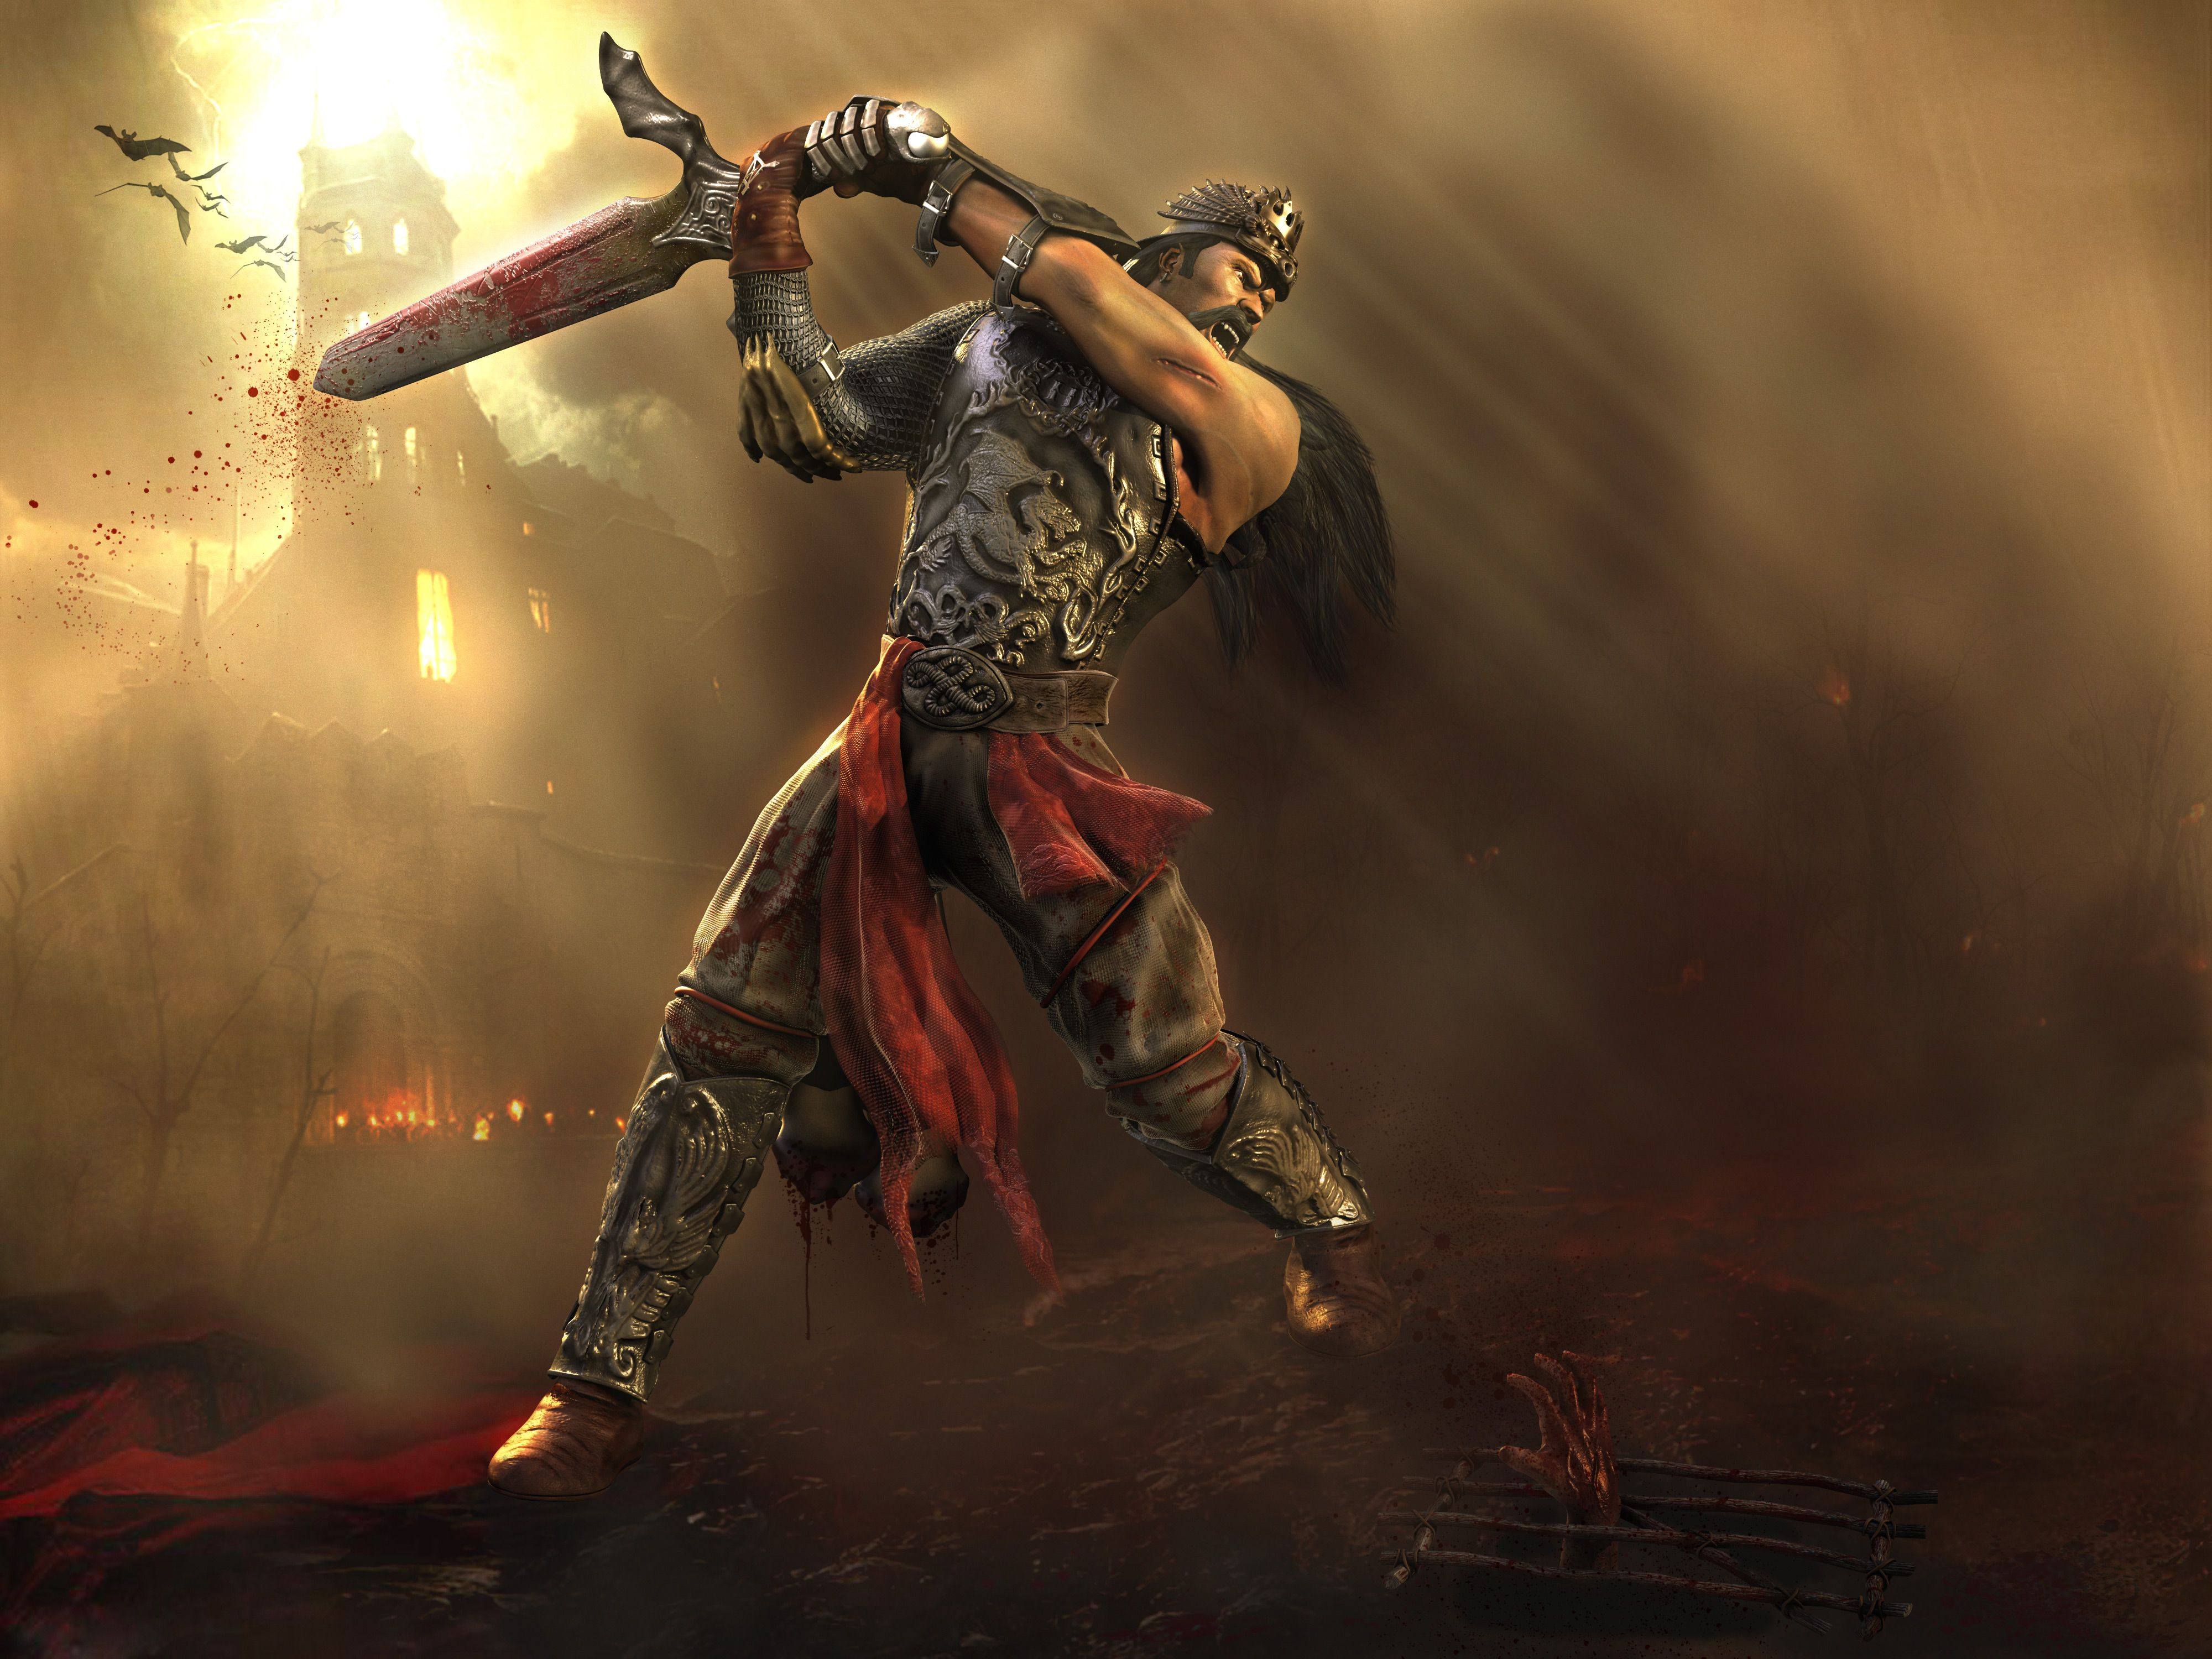 4000x3000 1195 Warrior HD Wallpapers | Background Images - Wallpaper Abyss